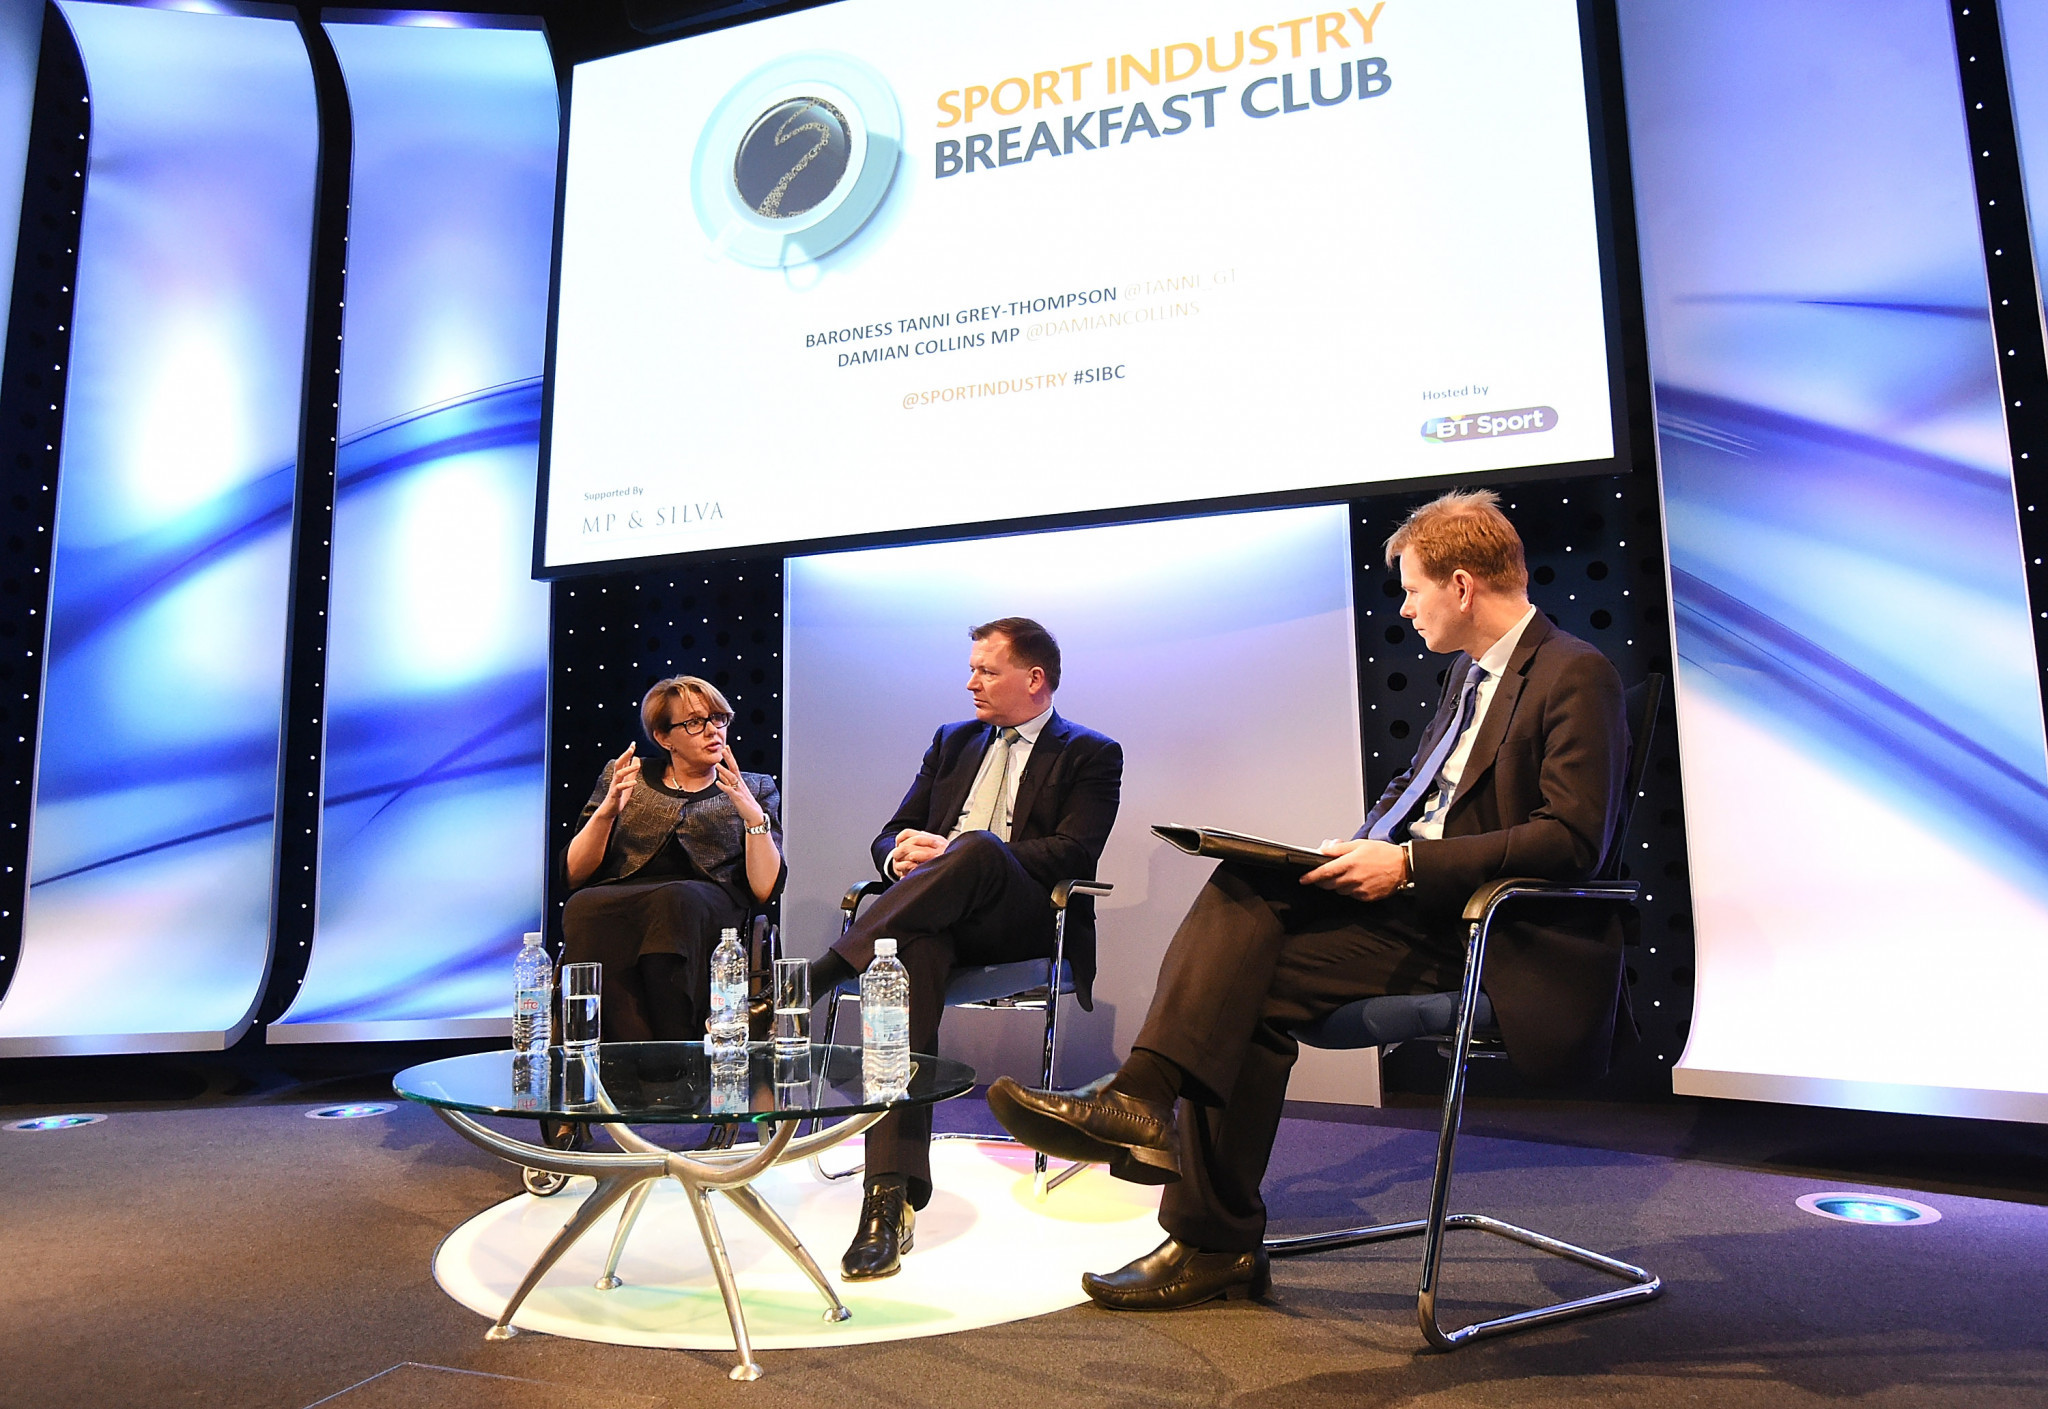 Baroness Tanni Grey-Thompson, left, and Damian Collins, centre, will take part in the Committee hearing ©Getty Images